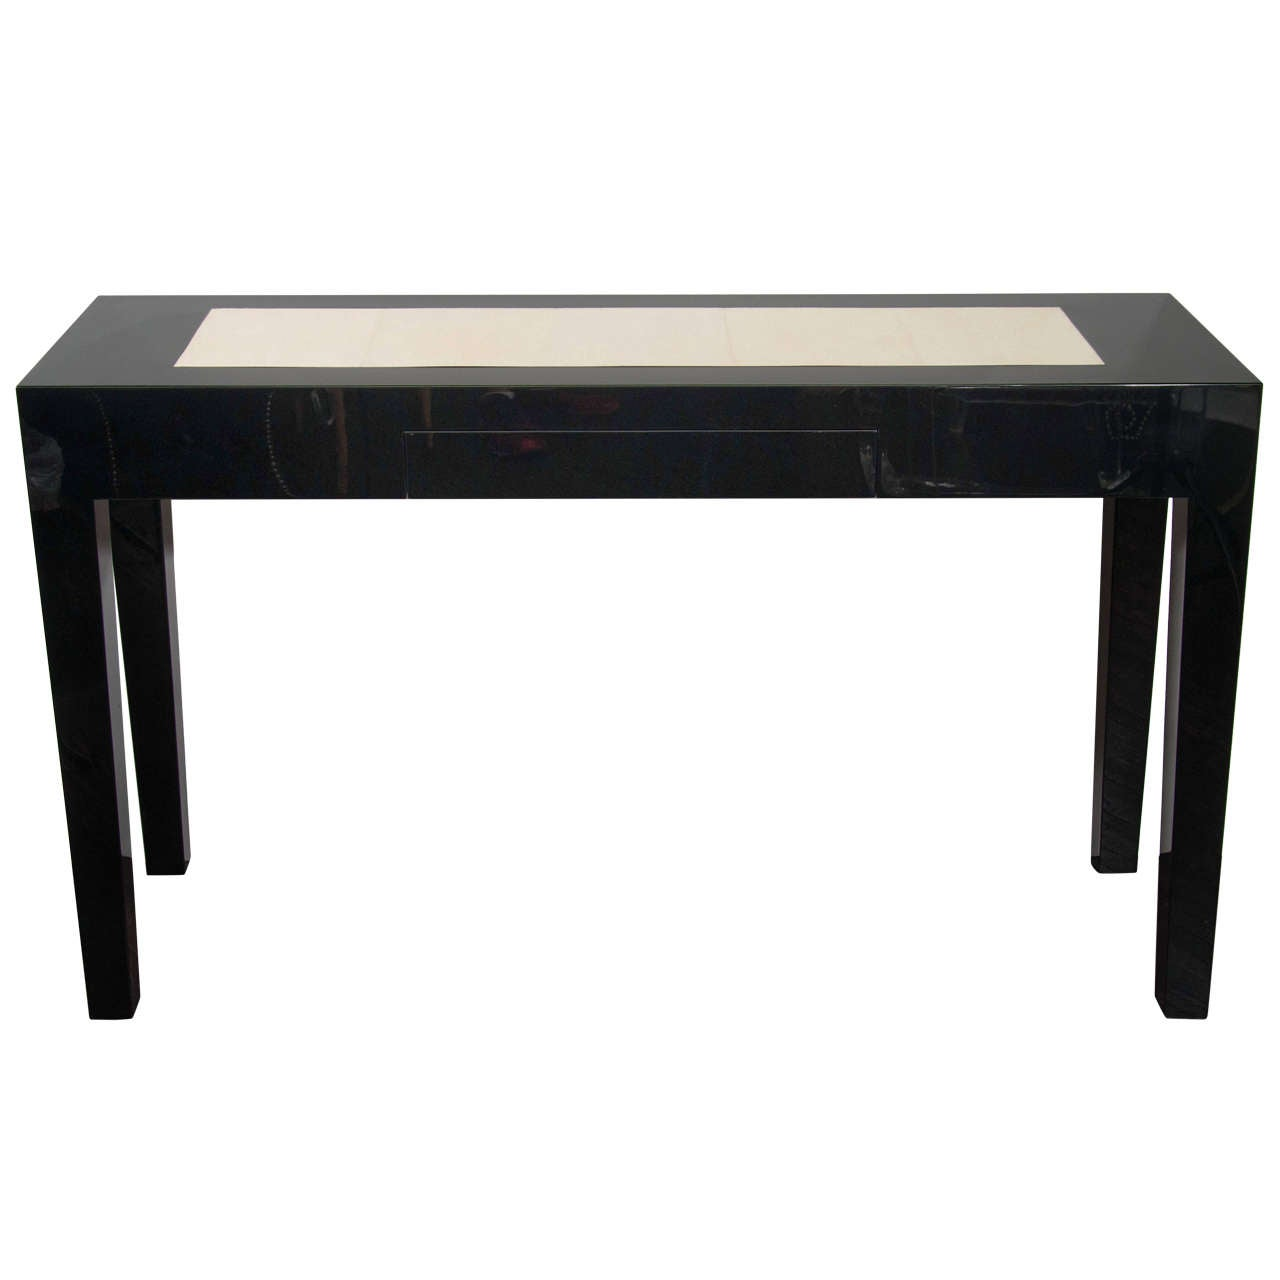 black lacquer sofa table promocion cama homecenter custom console with shagreen insert at